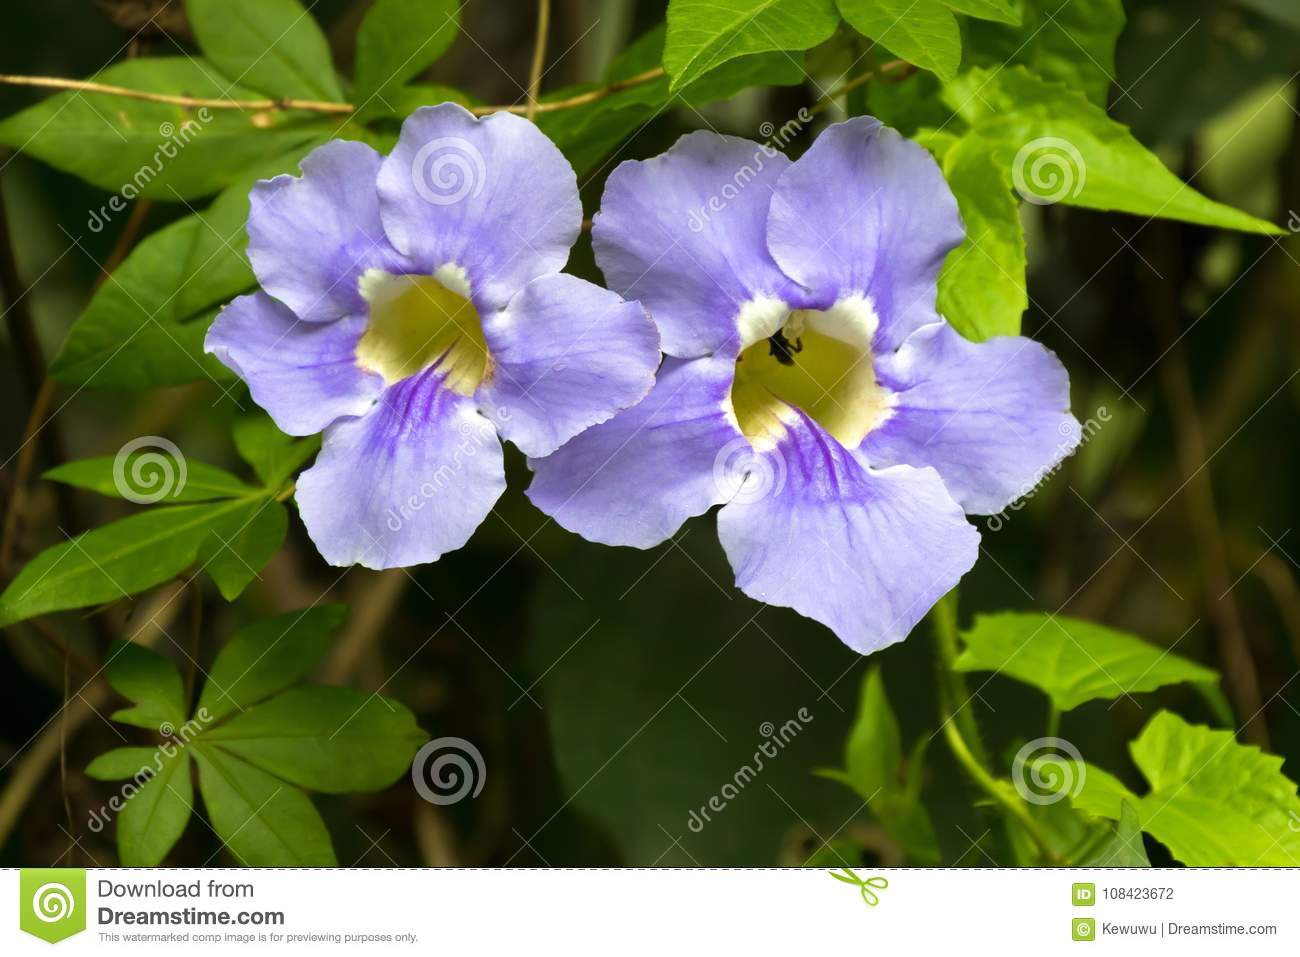 Blue Trumpet Vine Flower In Blue With Yellow Inside Growing In